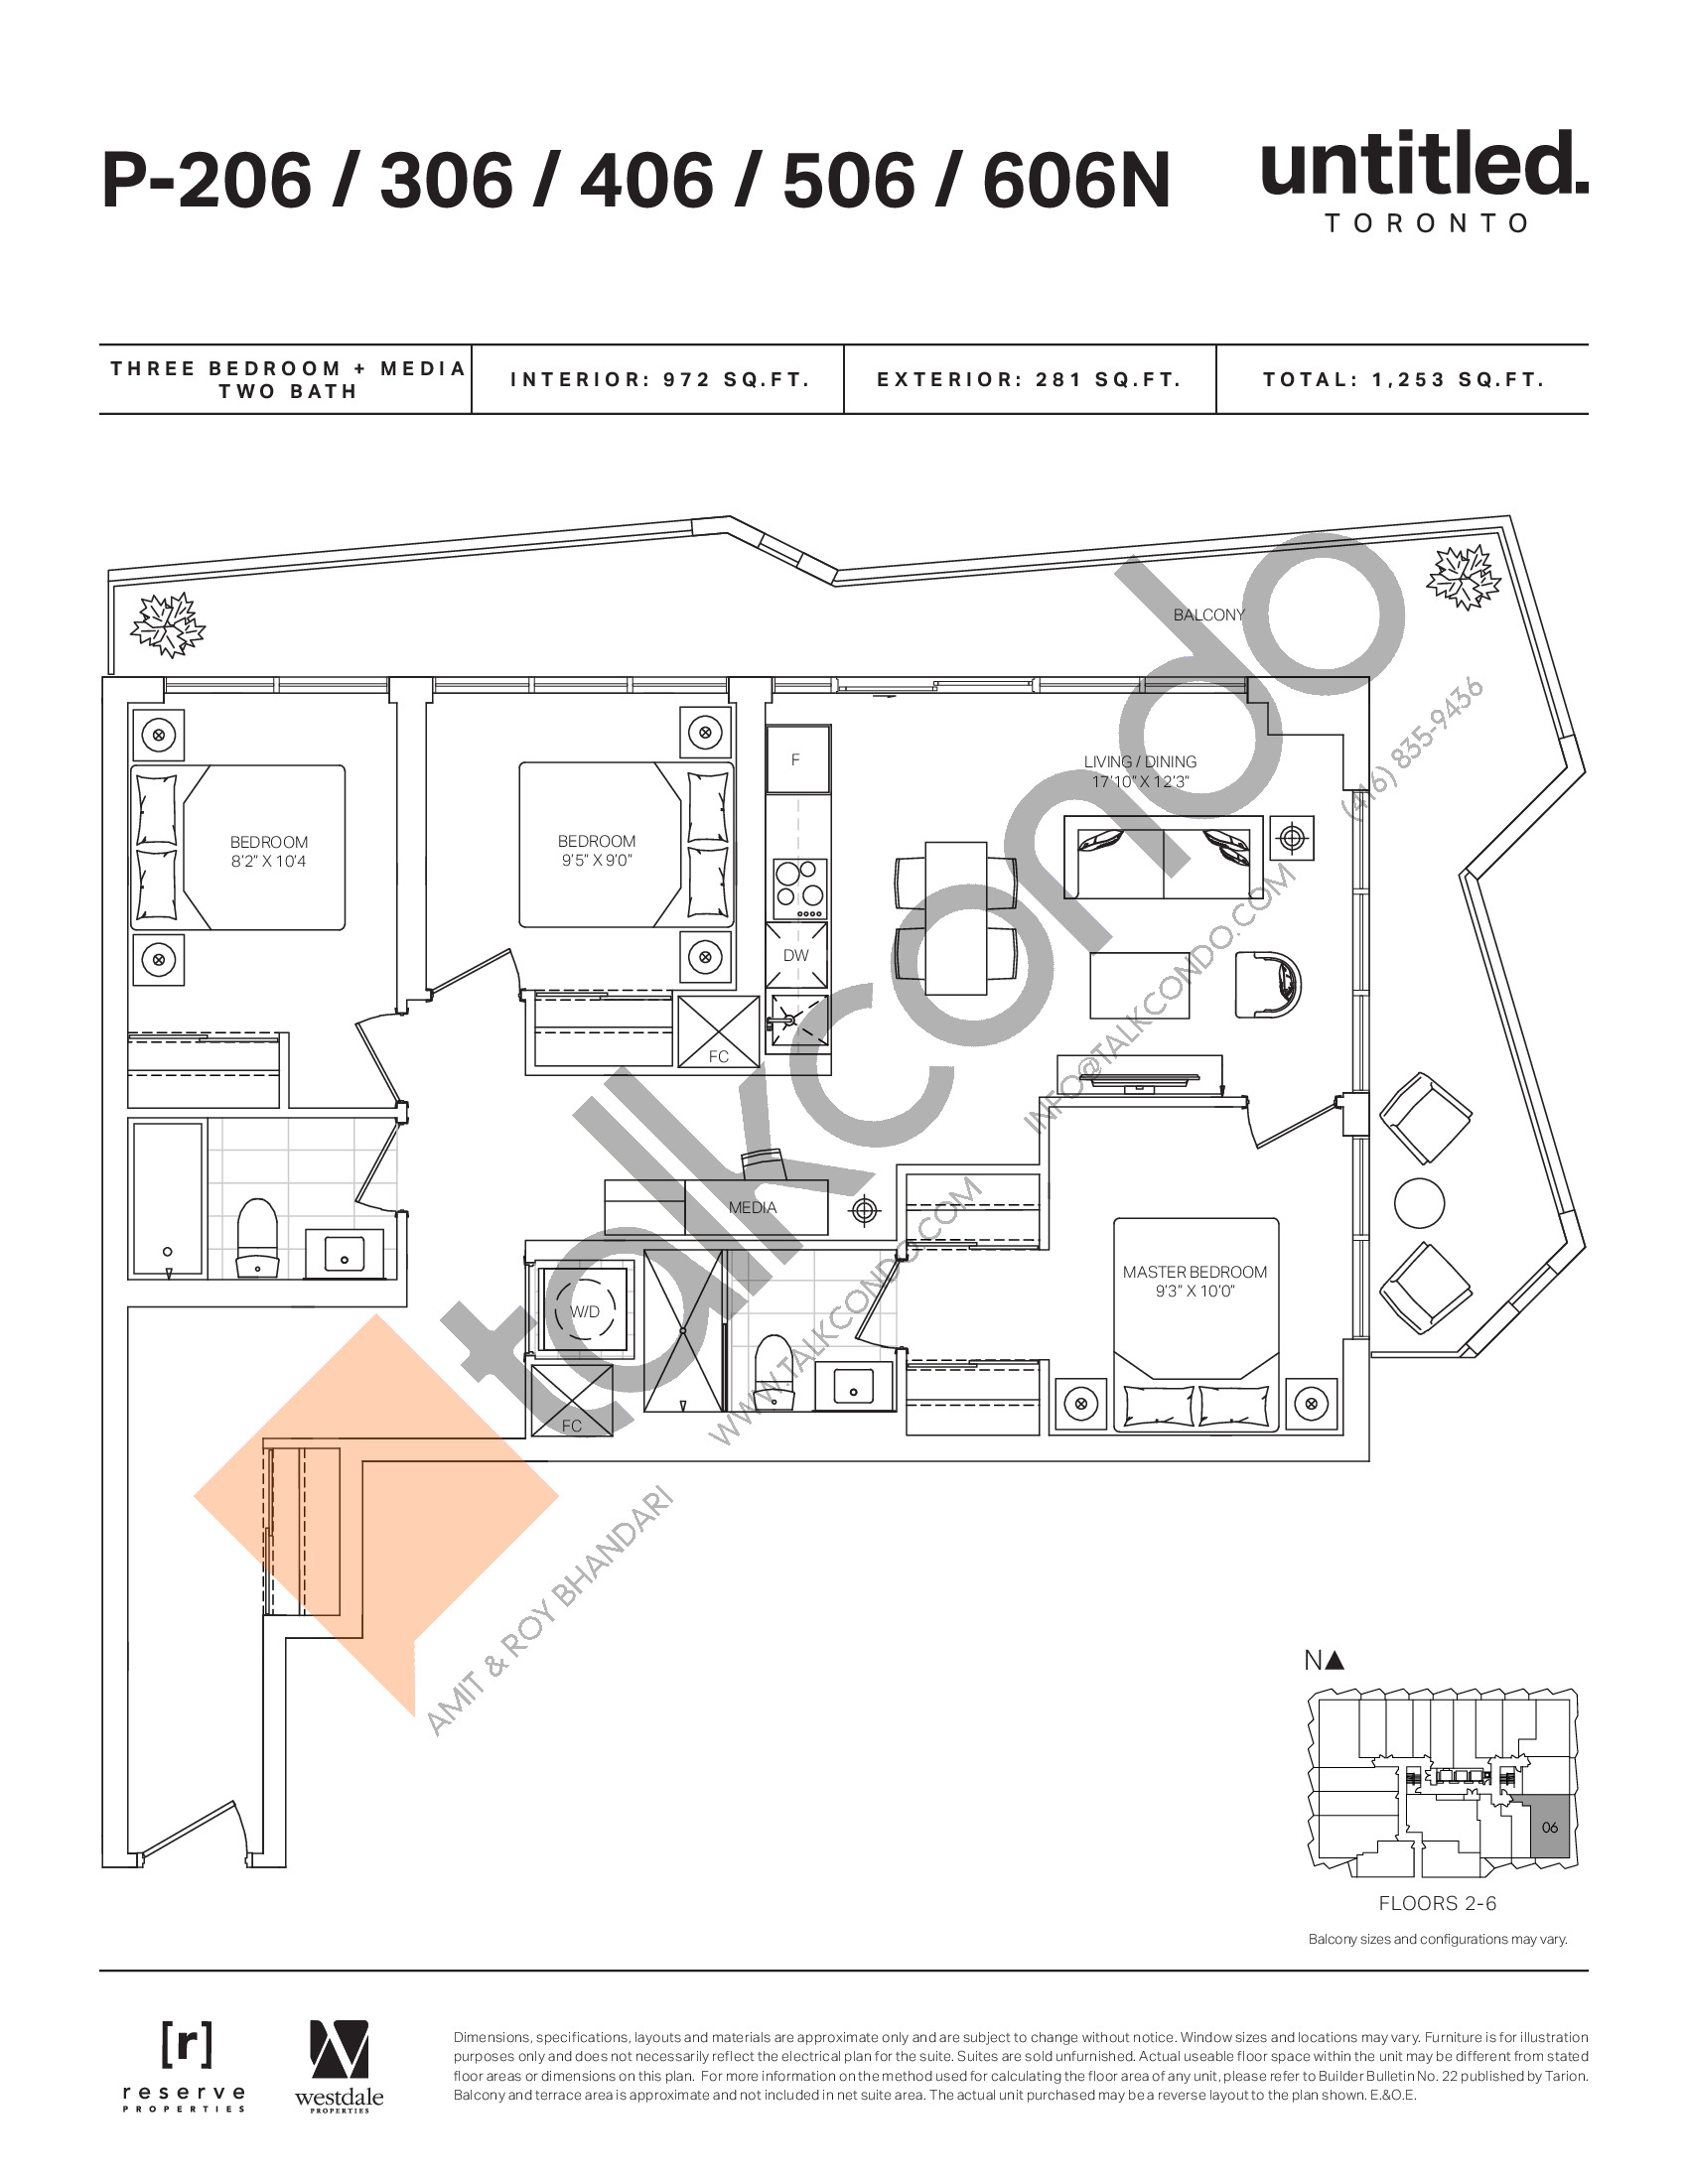 P-206/306/406/506/606N Floor Plan at Untitled North Tower Condos - 972 sq.ft